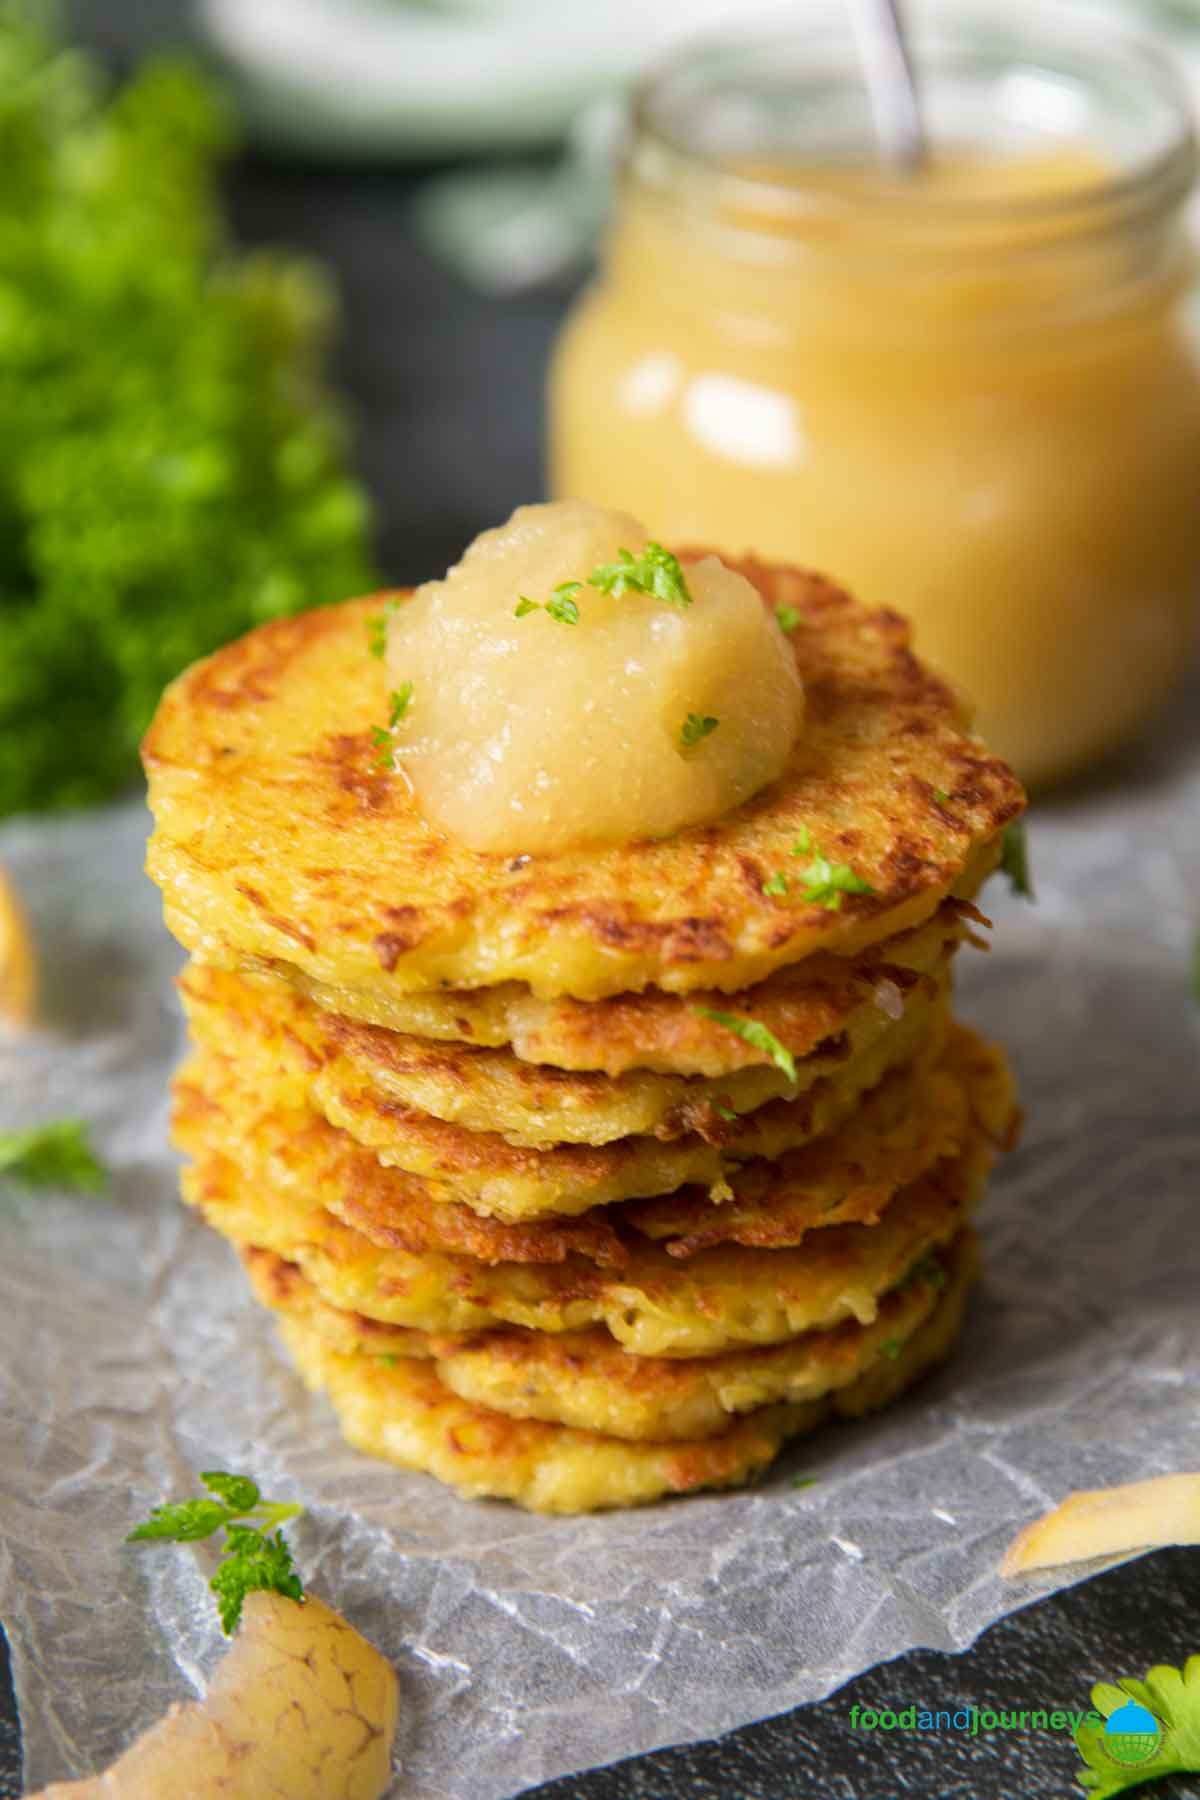 A stack of potato pancakes, with a jar of applesauce on the background, and a dollop on top.